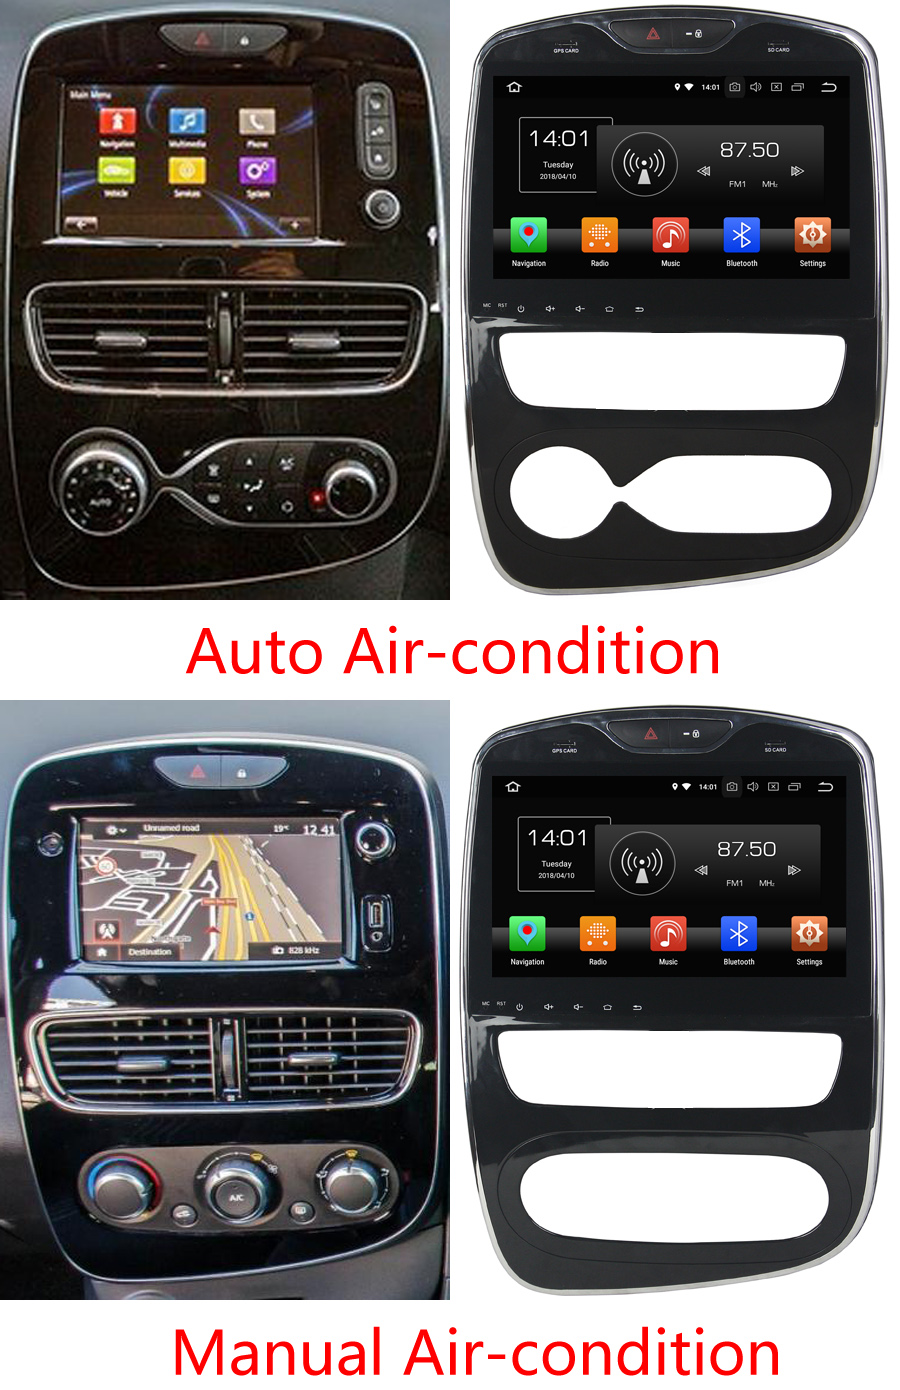 aftermarket navigation auto radio for renault clio 2017. Black Bedroom Furniture Sets. Home Design Ideas